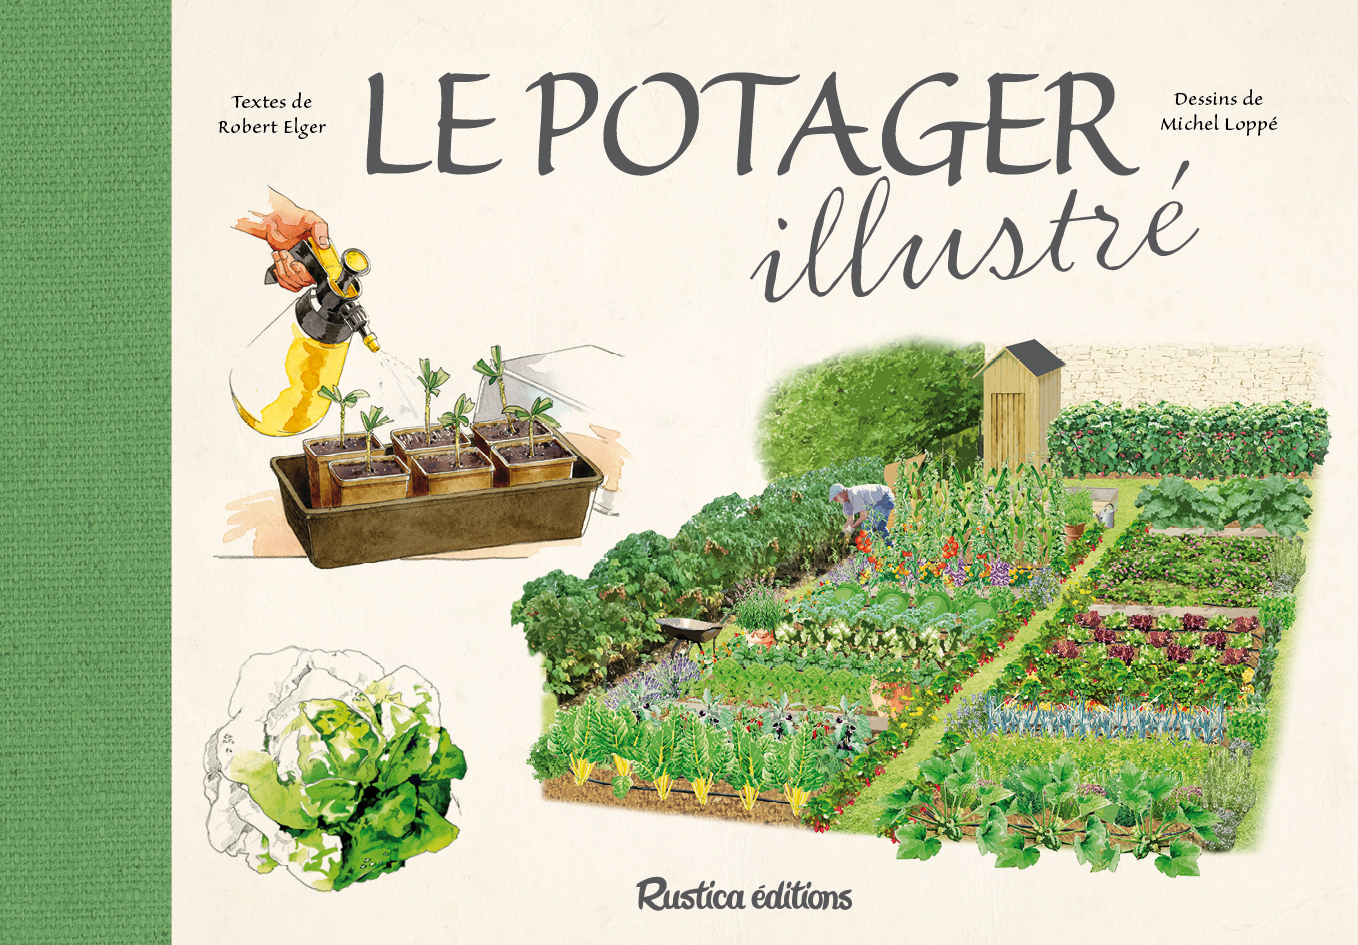 LE POTAGER ILLUSTRE